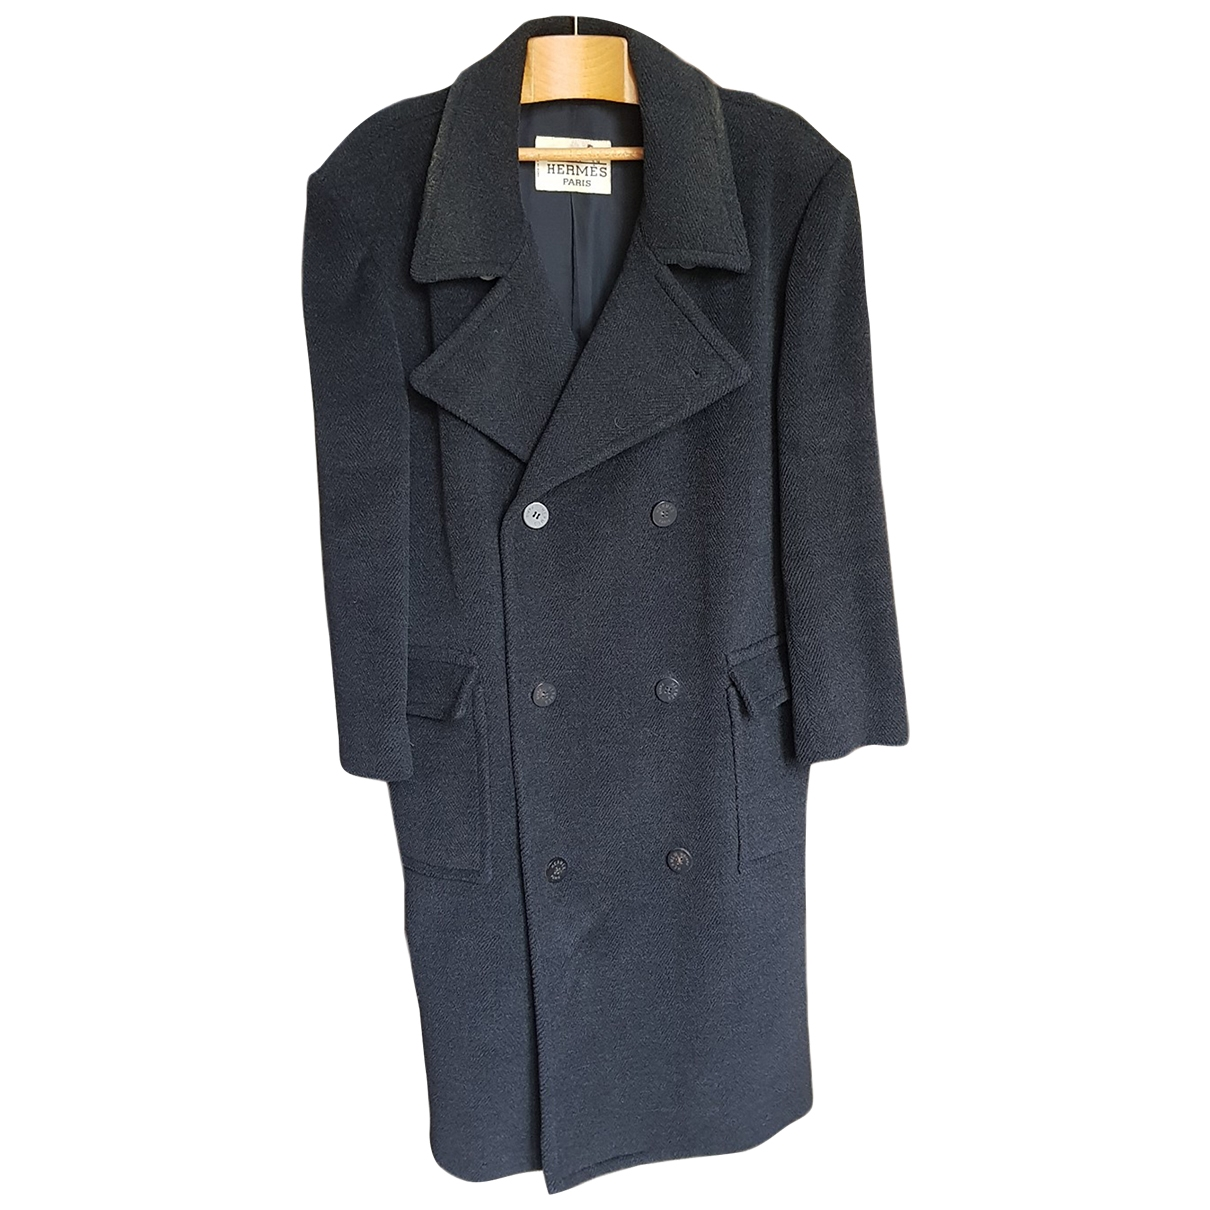 Hermès \N Anthracite Wool coat  for Men L International